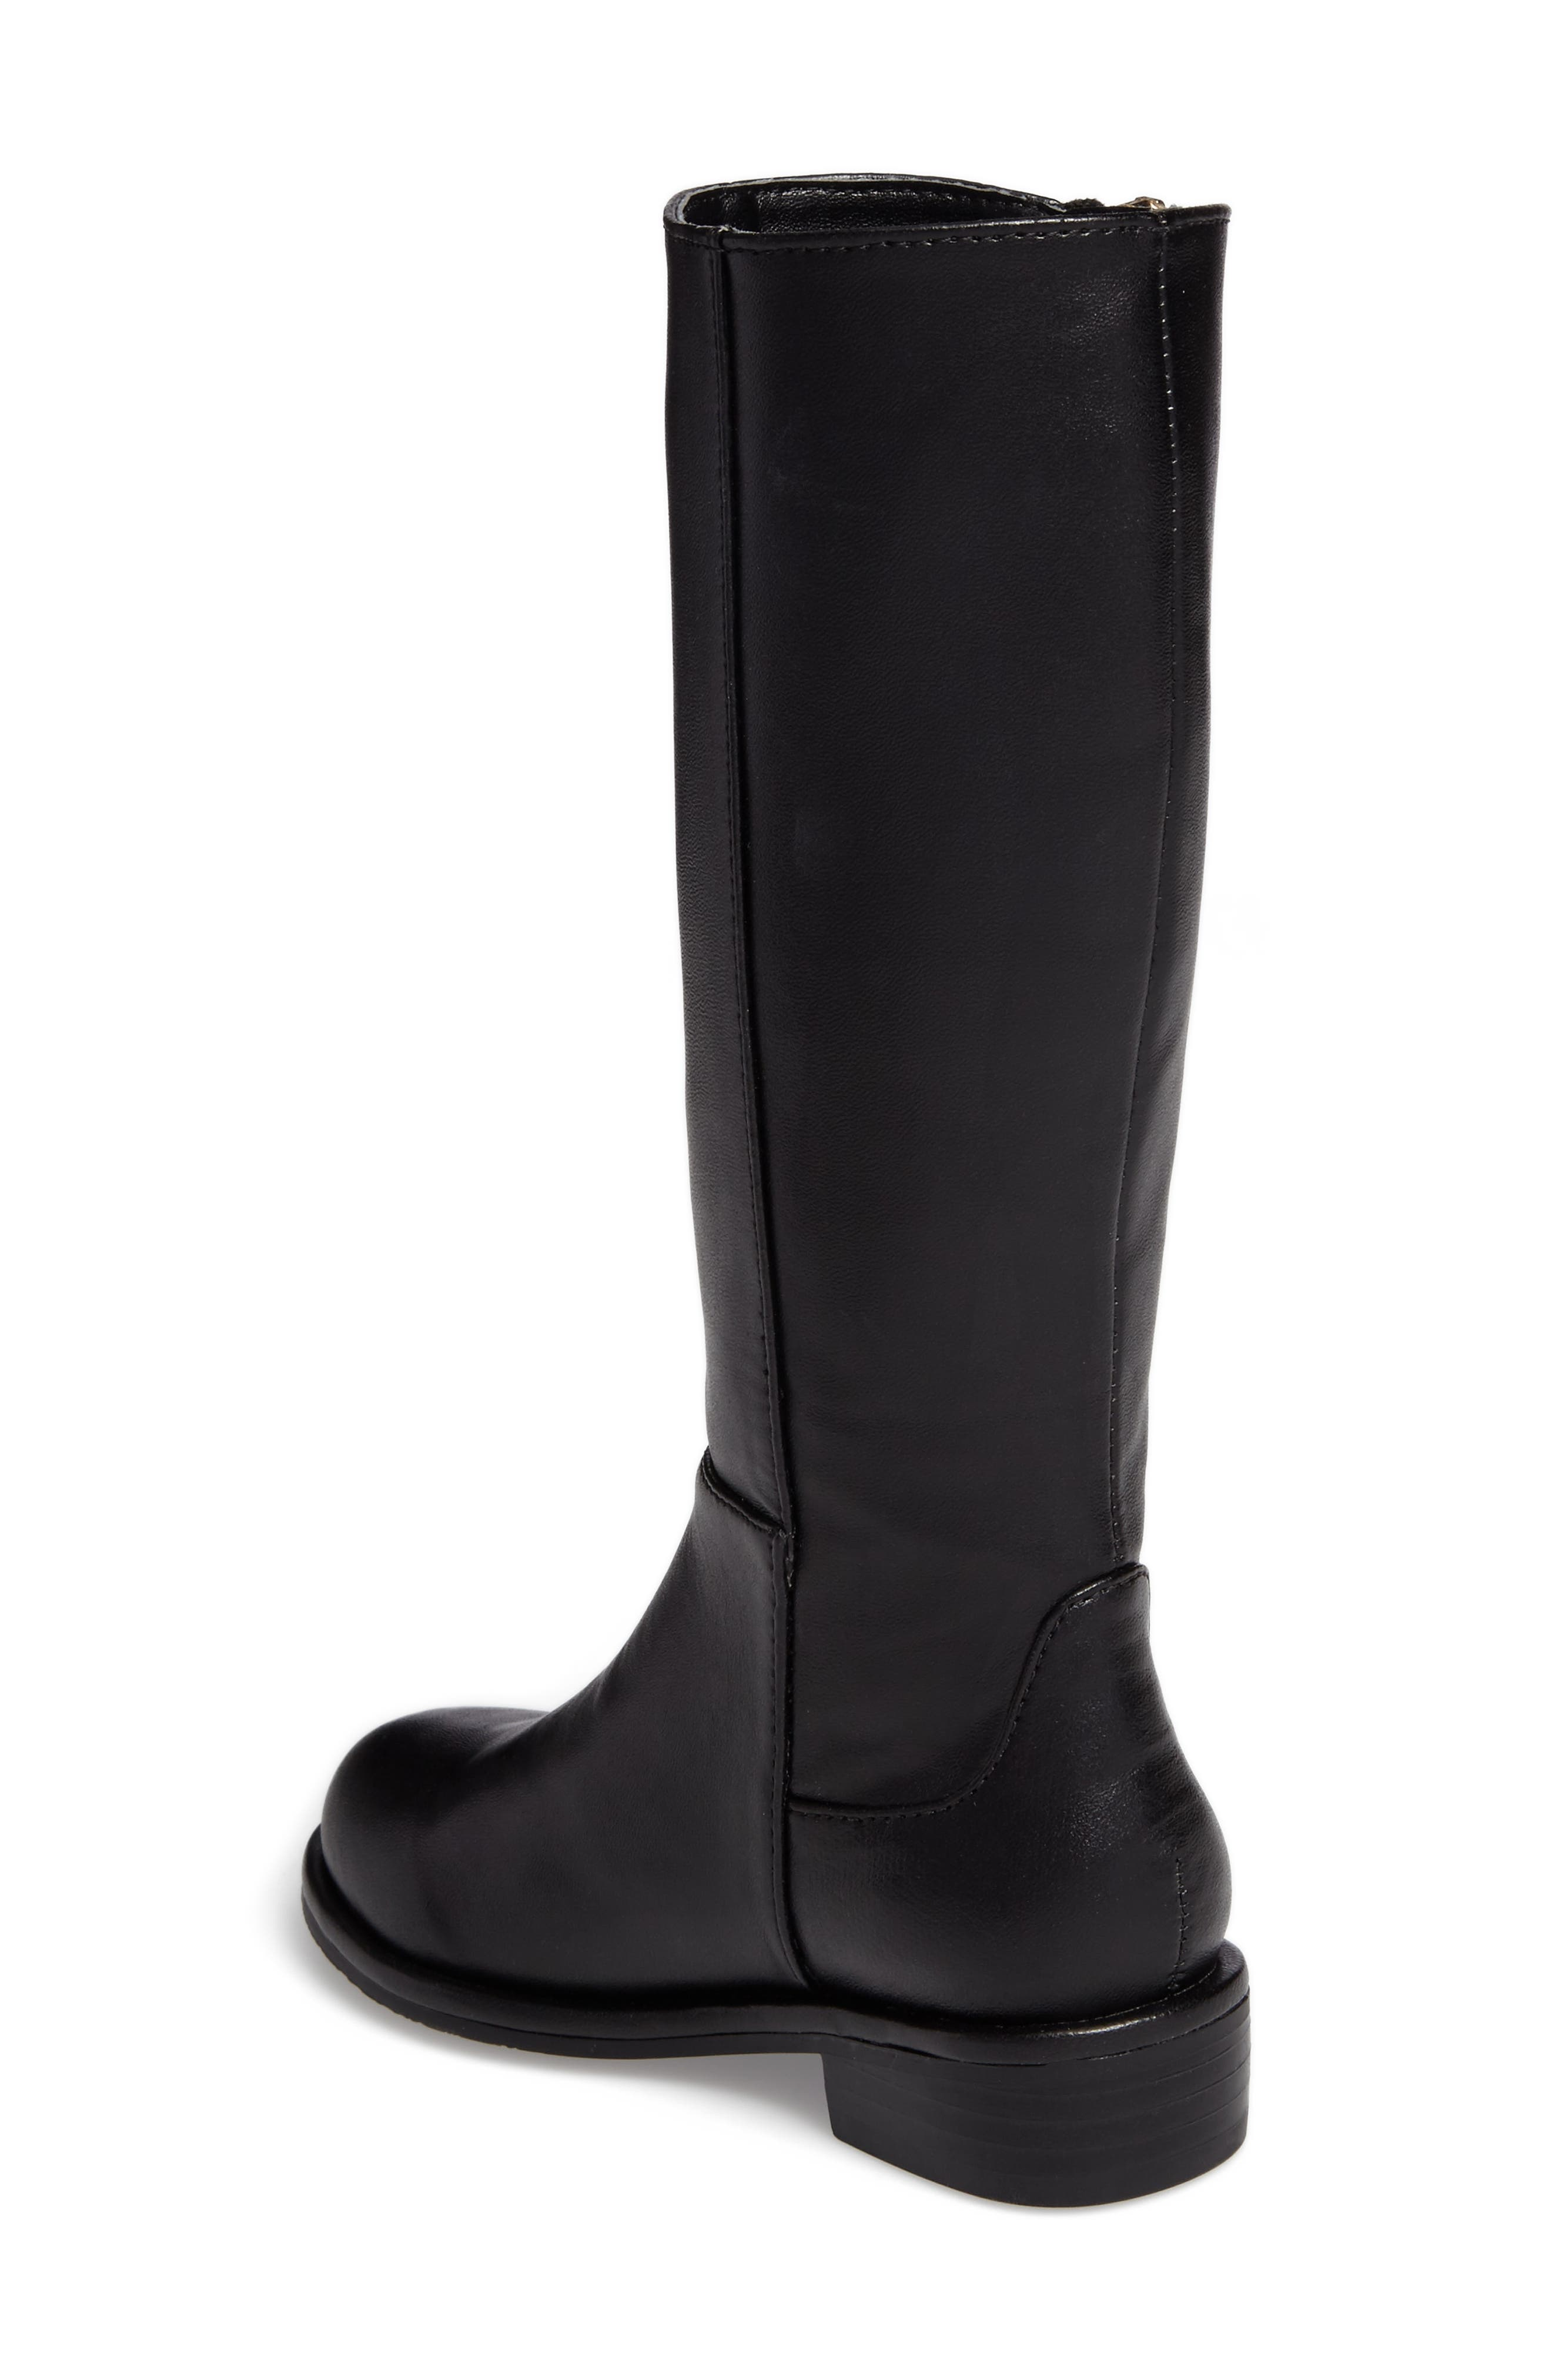 Lowland Riding Boot,                             Alternate thumbnail 2, color,                             Black Faux Leather